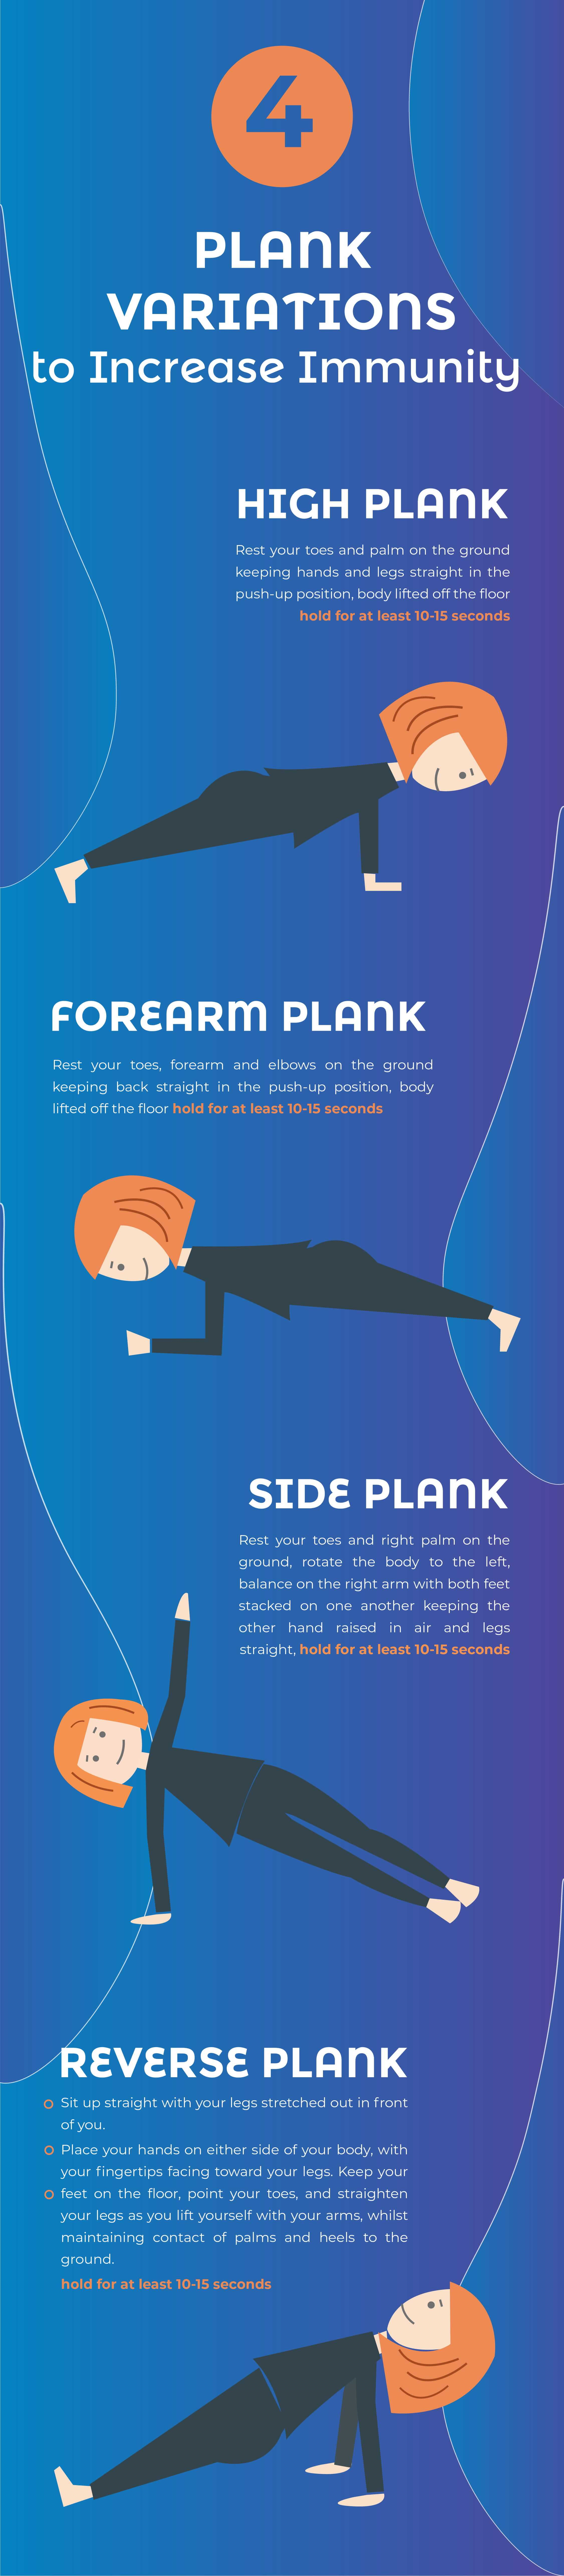 4 Plank Variations to Try at Home